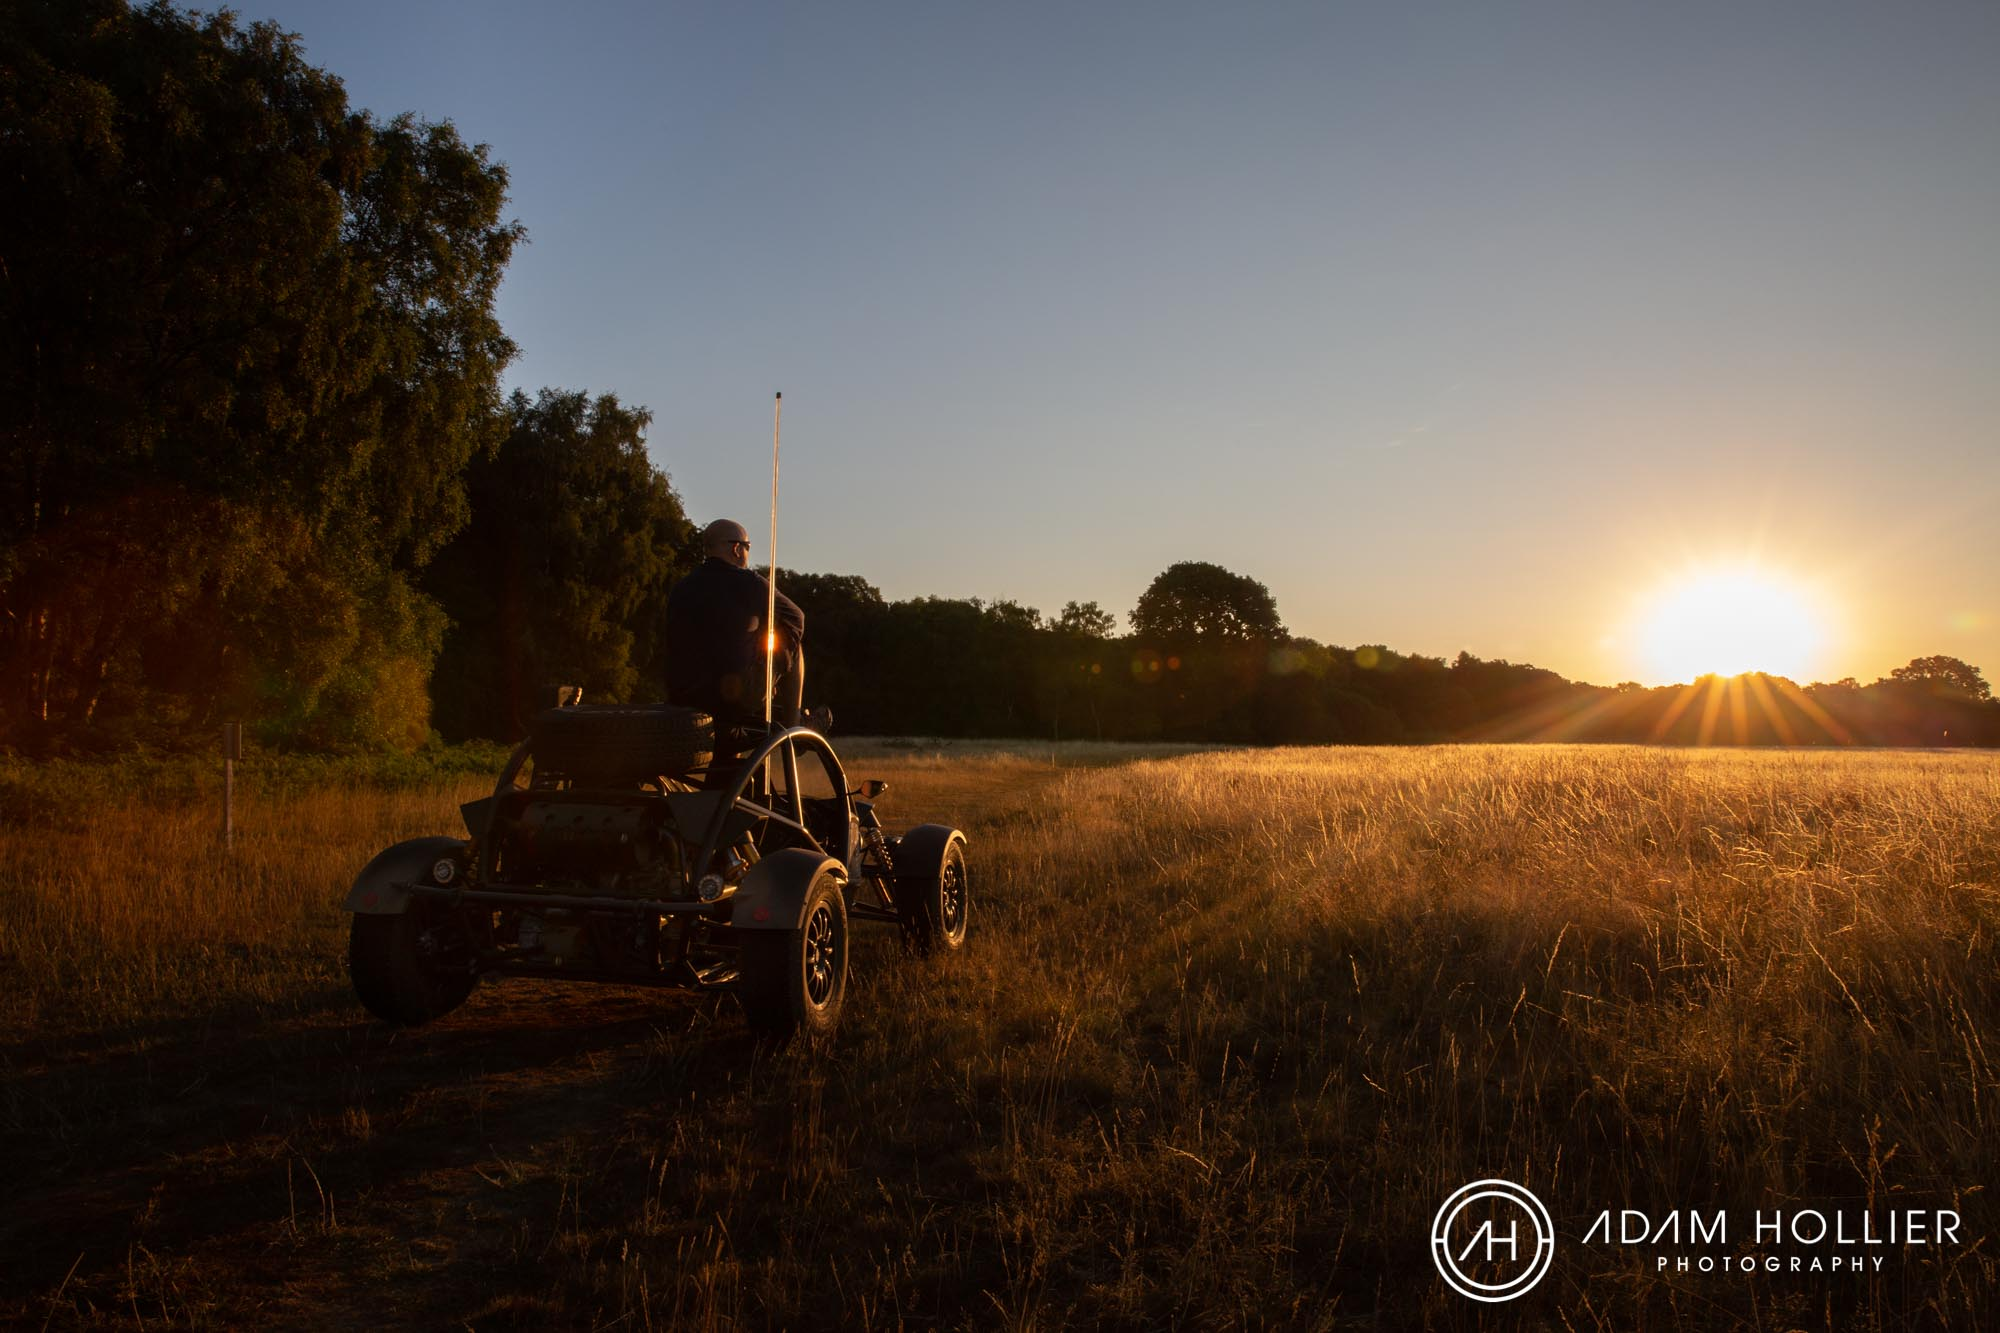 The petrol heads amongst you will know this Mad Max dune buggy-type monster is an Ariel Nomad. We shot this at about 5am (if not earlier!) near Ashridge and this was one of the key images I was keen to get from the shoot. We spent plenty of time shooting this wonderful car in water, mud and dust but I like the serenity of this shot. Man and machine in harmony!